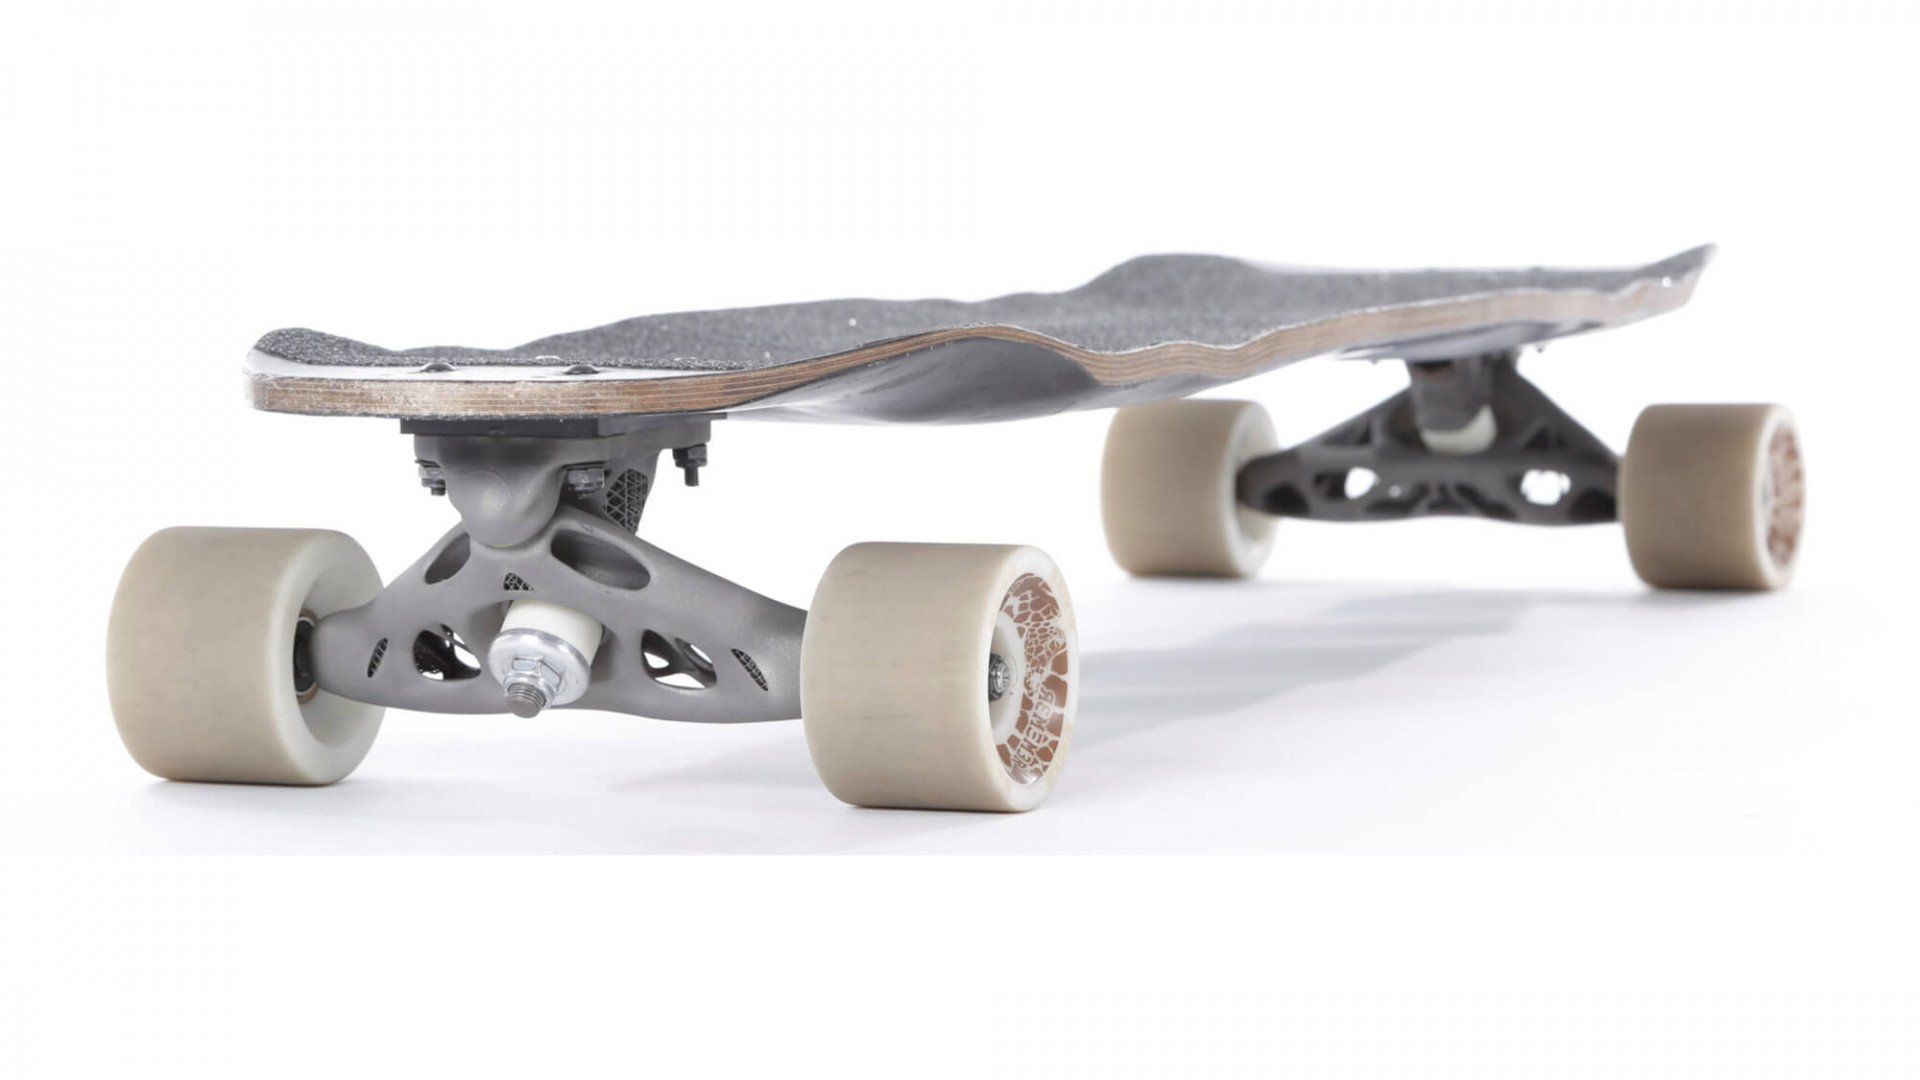 Skateboard Trucks Optimized for Downhill Racing with Metal 3D Printing | All3DP